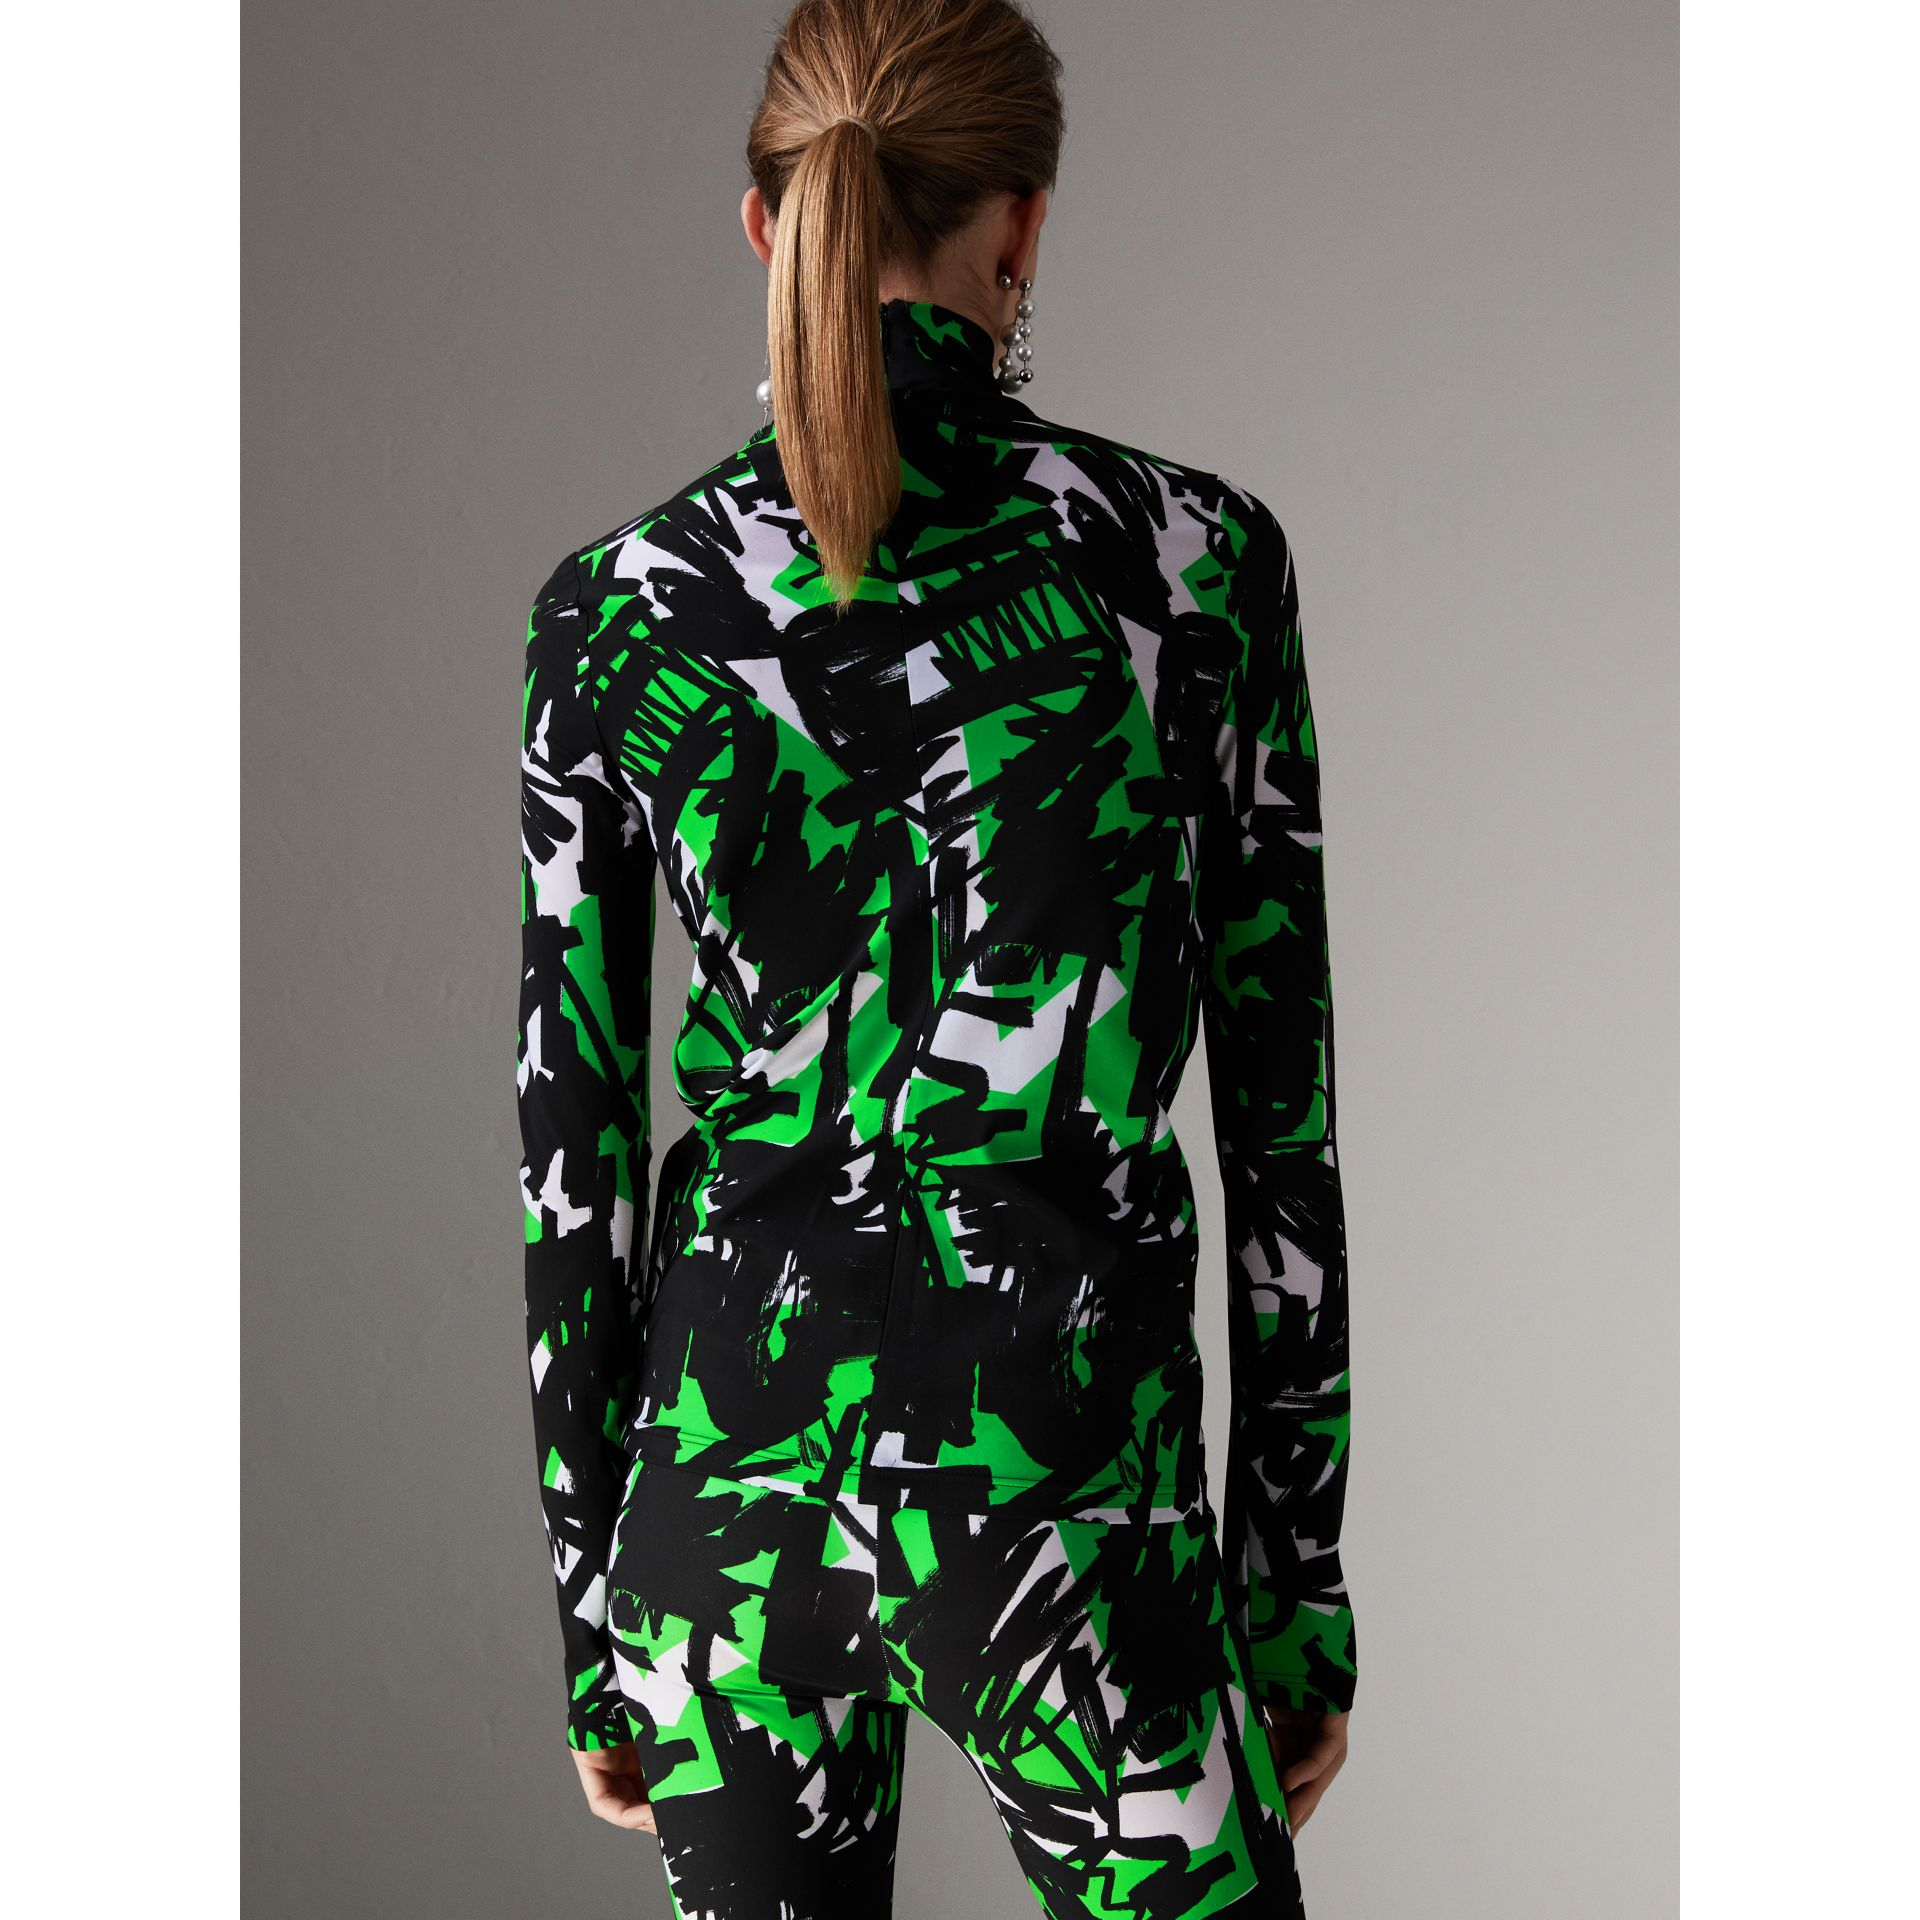 Graffiti Print Stretch Jersey Top in Neon Green - Women | Burberry United Kingdom - gallery image 2